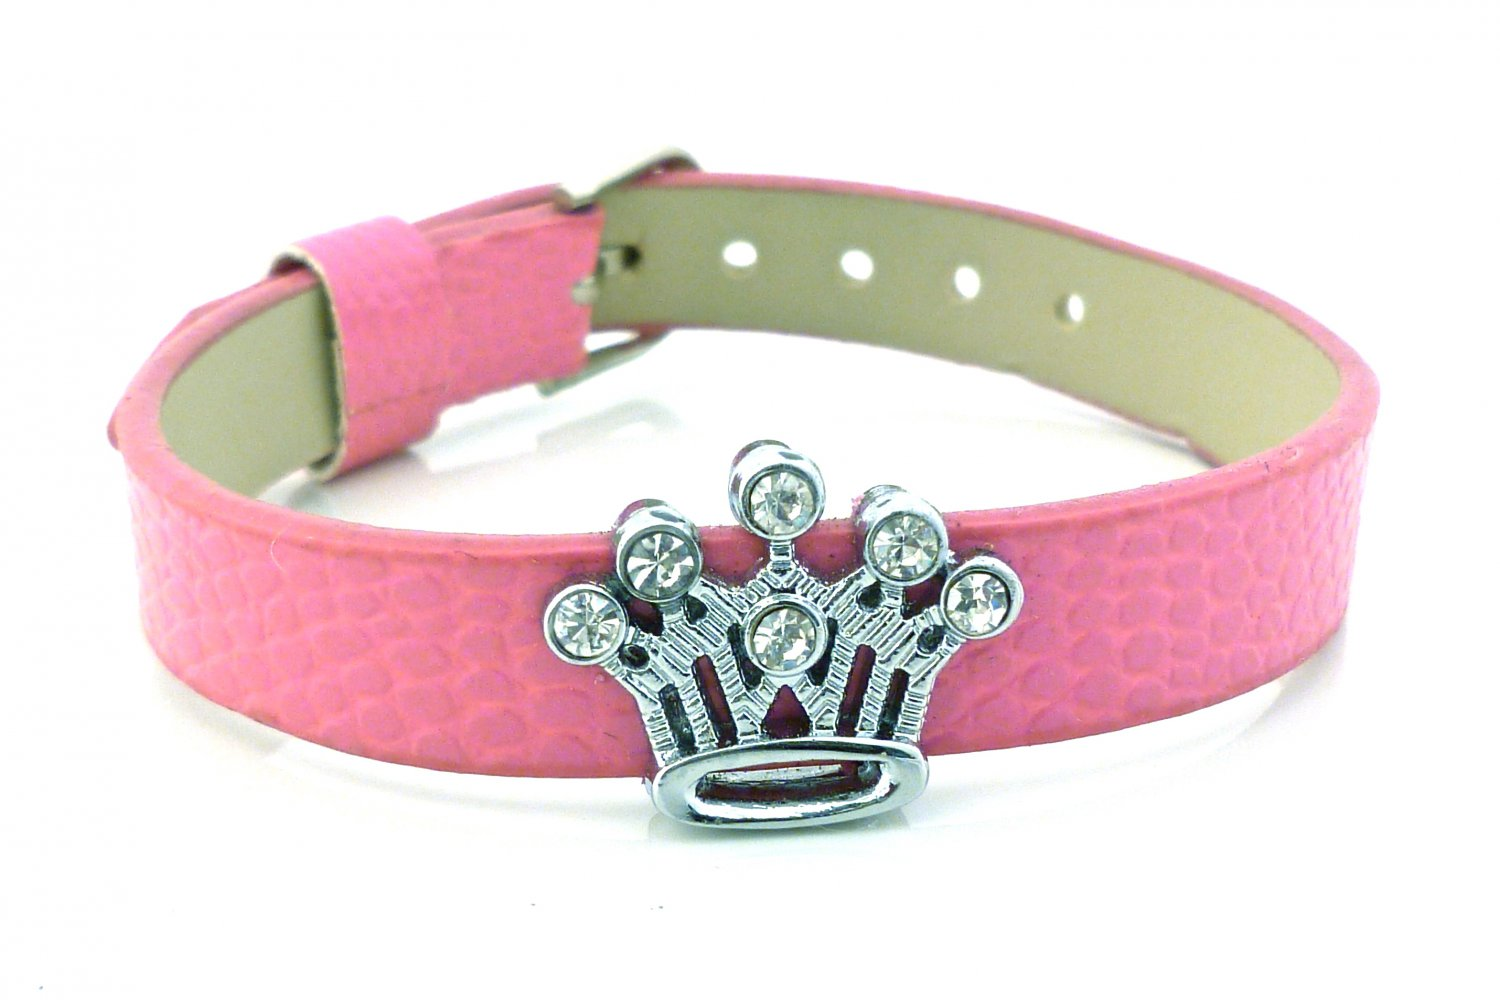 Crown Rhinestone Slide Charm Hot Pink Belt Buckle Style Bracelet